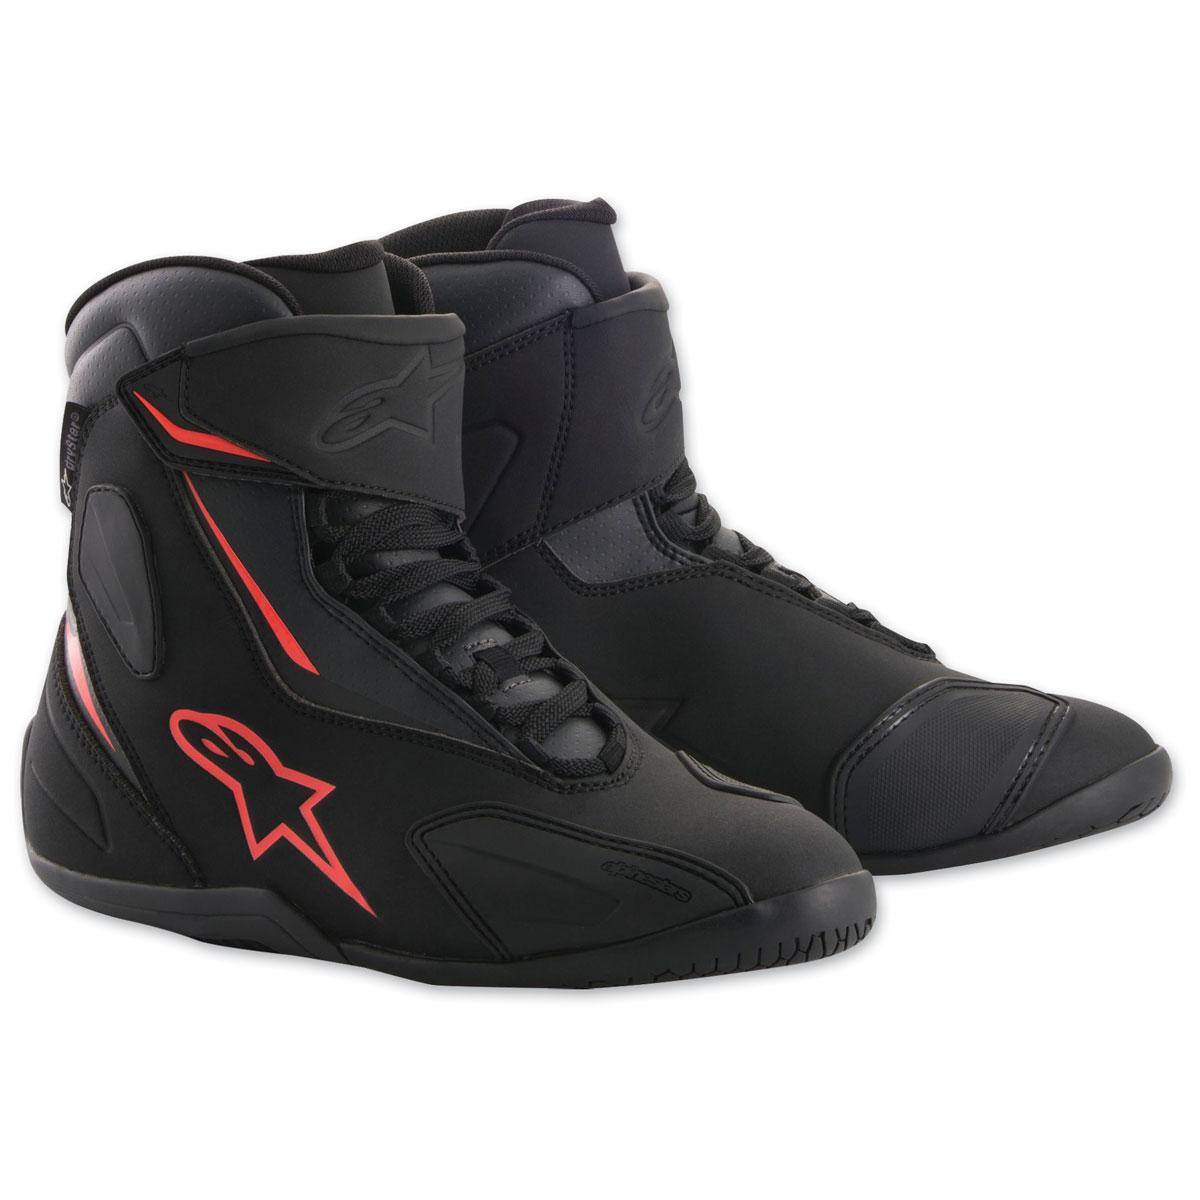 Alpinestars Men's Fastback-2 Drystar Black/Red Shoes